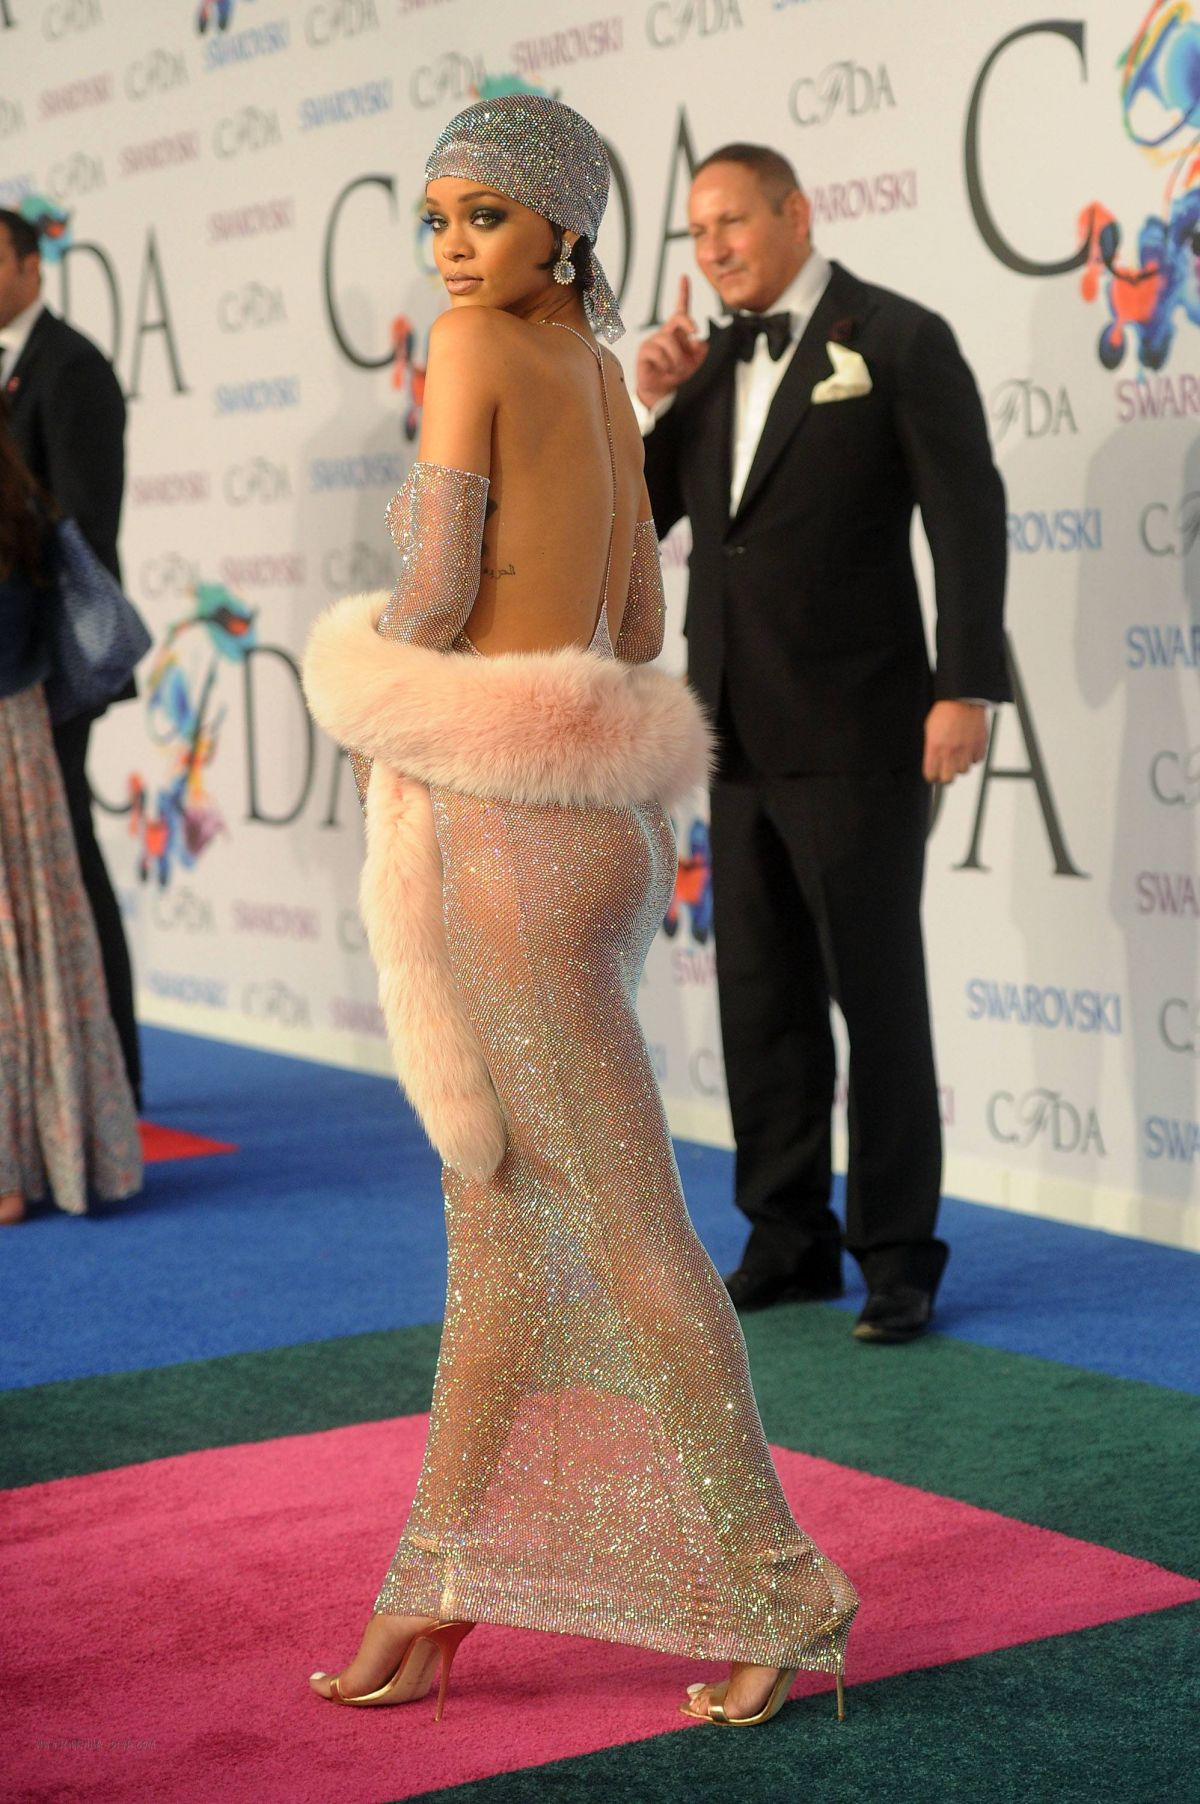 rihanna-at-cfda-fashion-awards